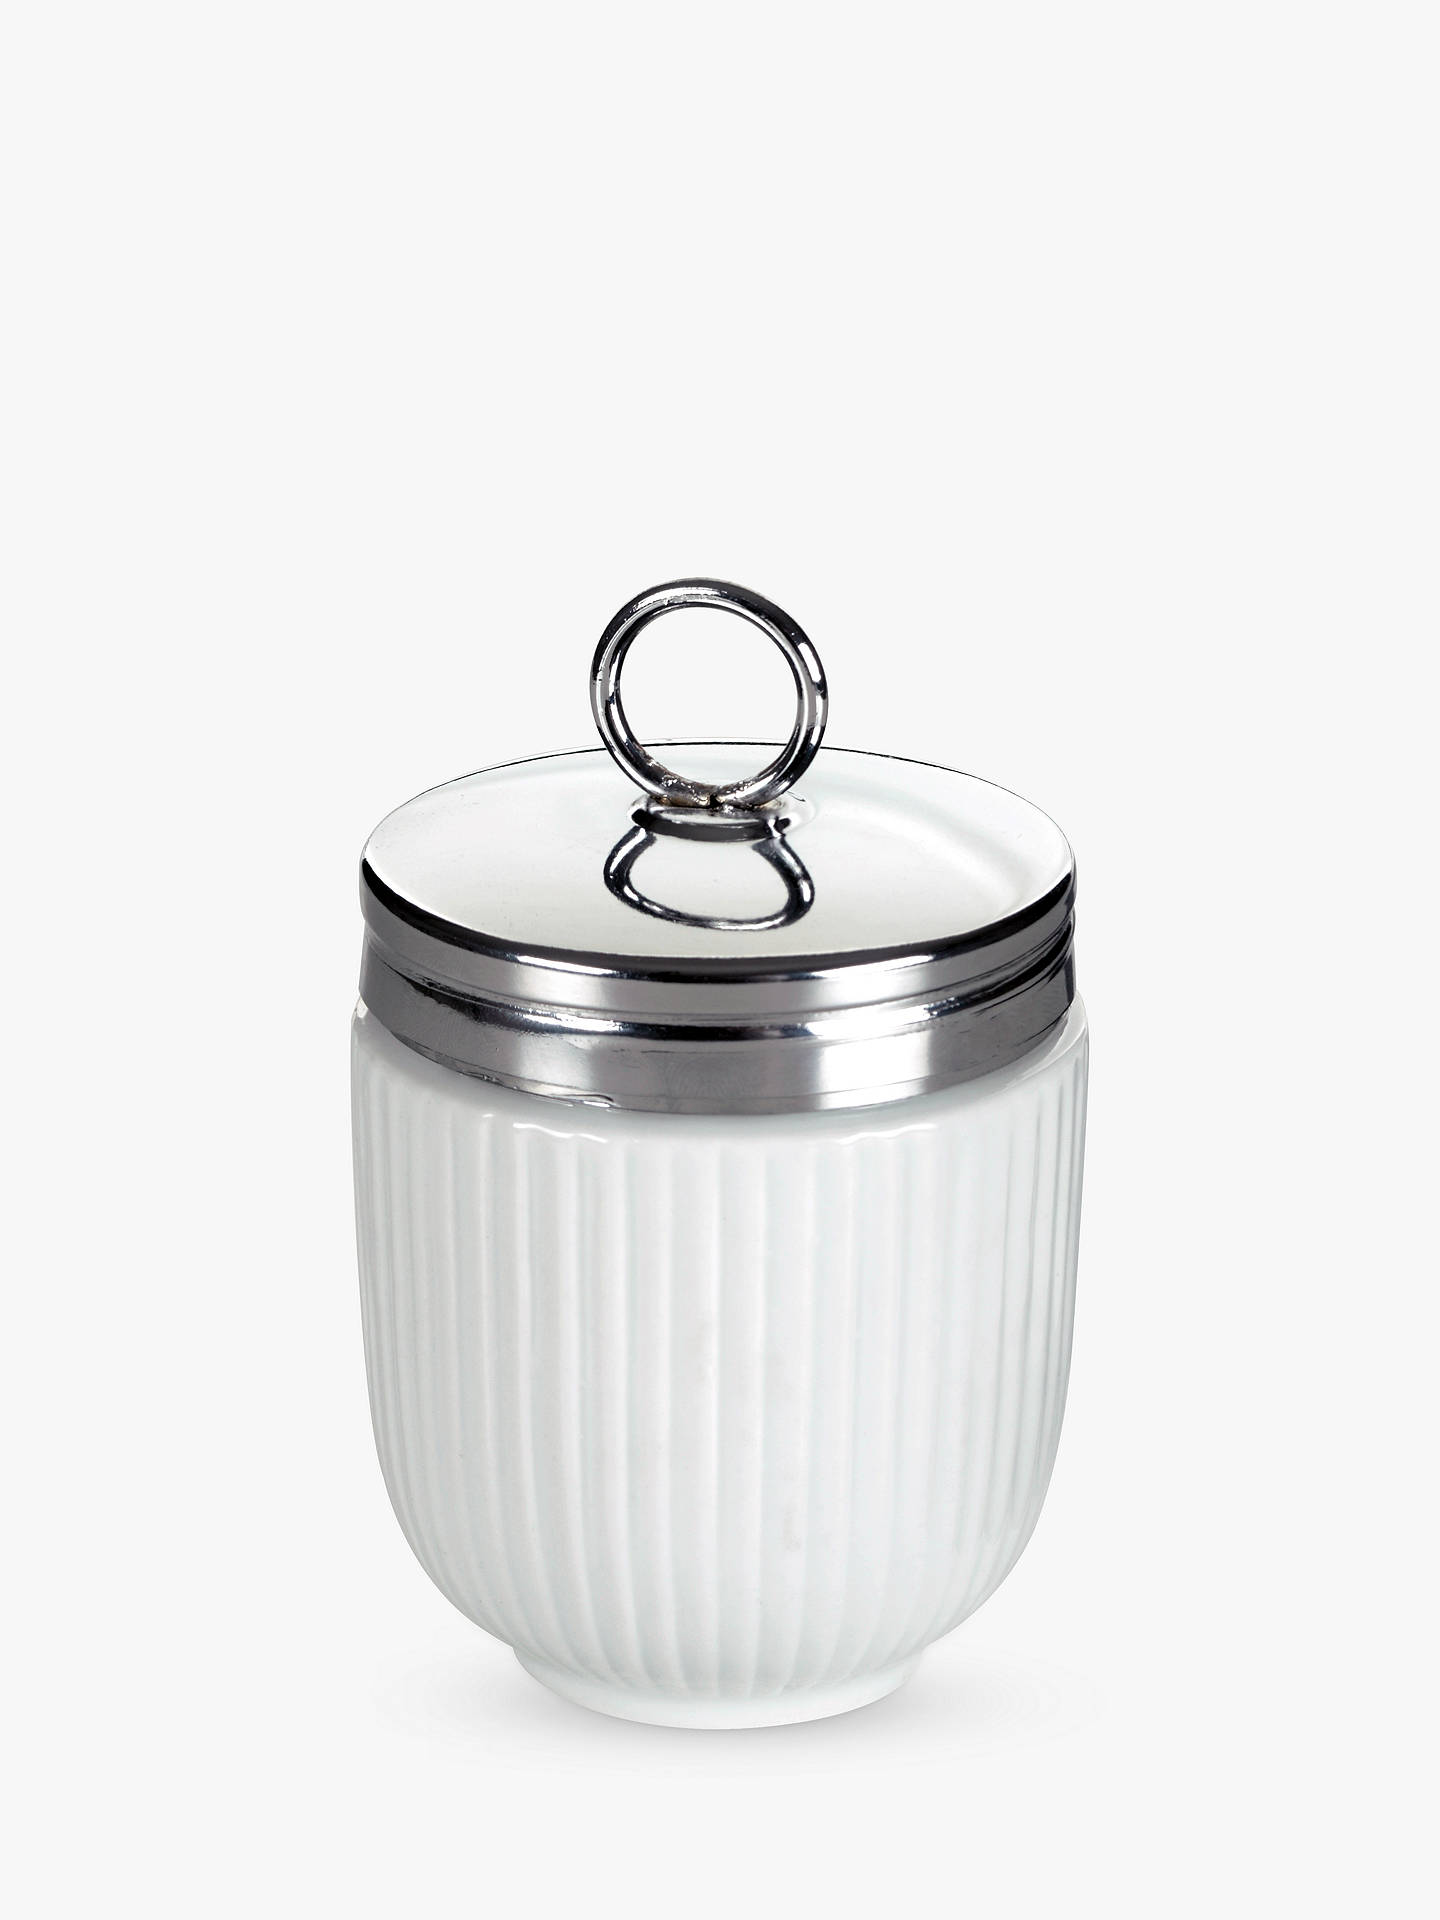 BuyJohn Lewis & Partners Egg Coddler Online at johnlewis.com